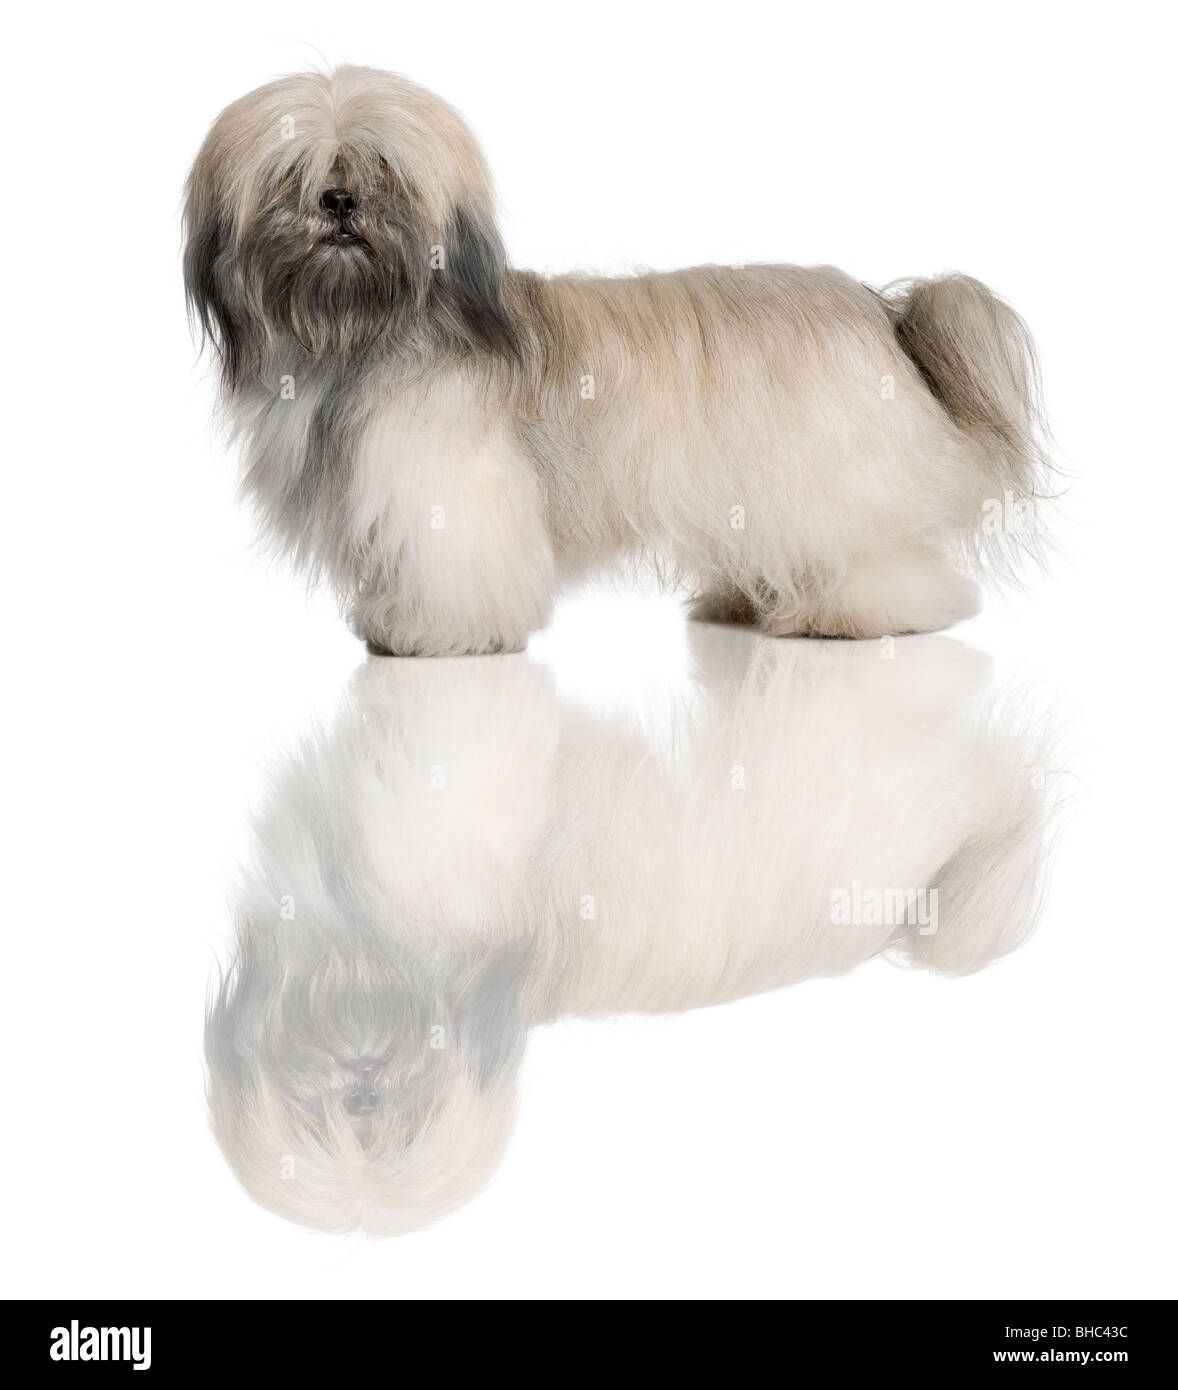 Lhasa Apso, 18 Months Old, standing in front of white background - Stock Image